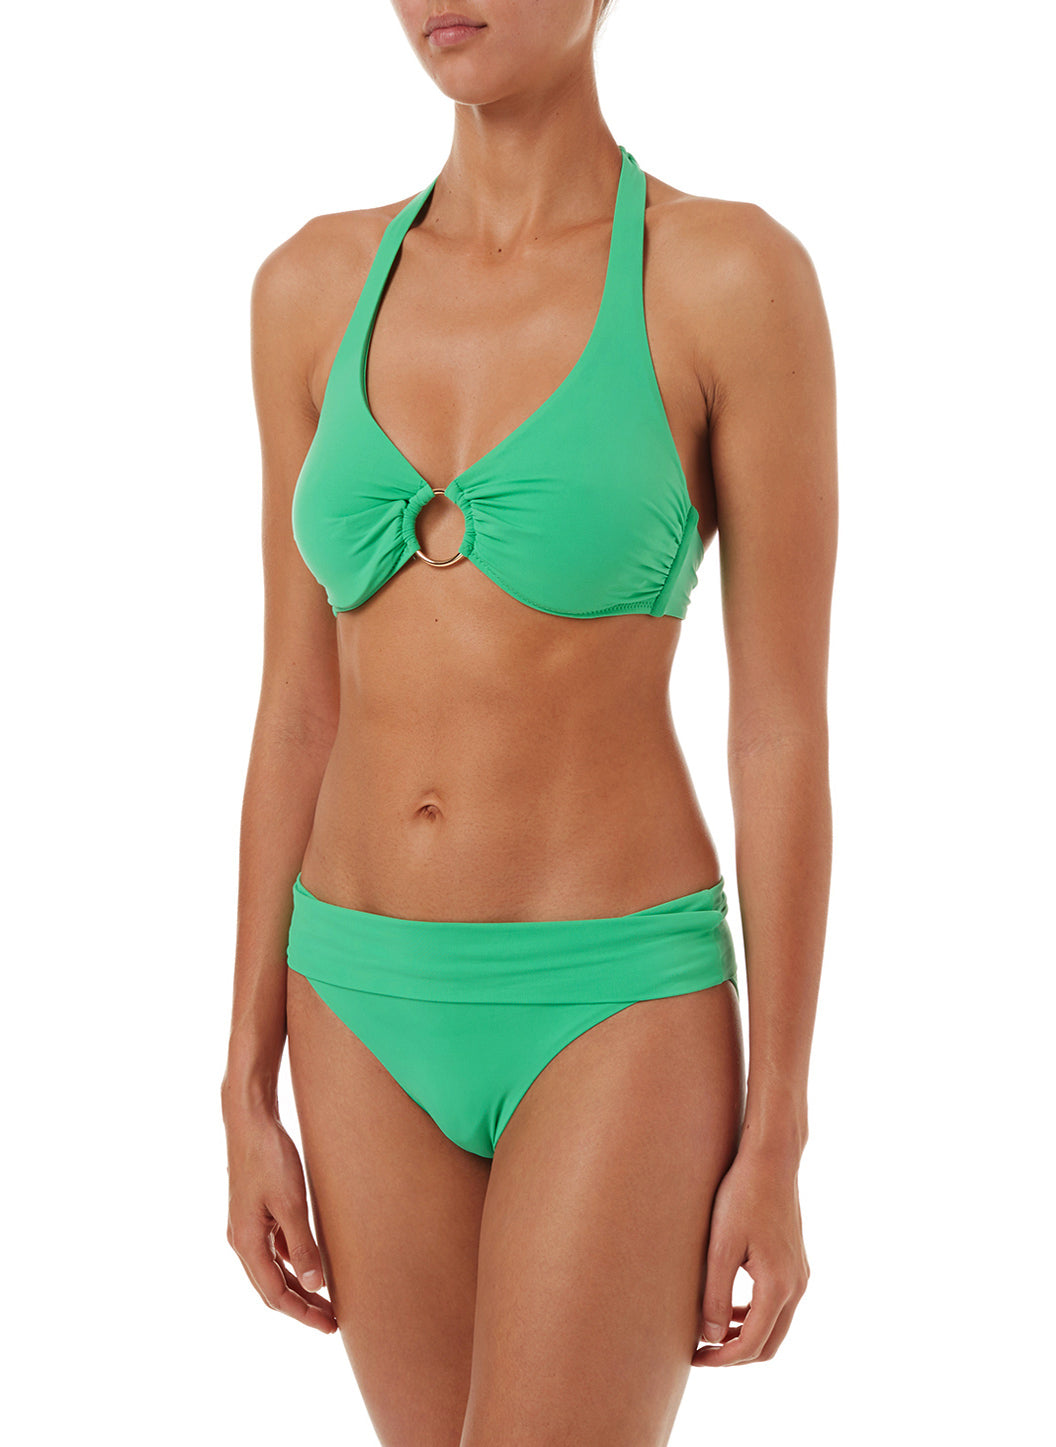 Brussels Green Halterneck Ring Supportive Bikini